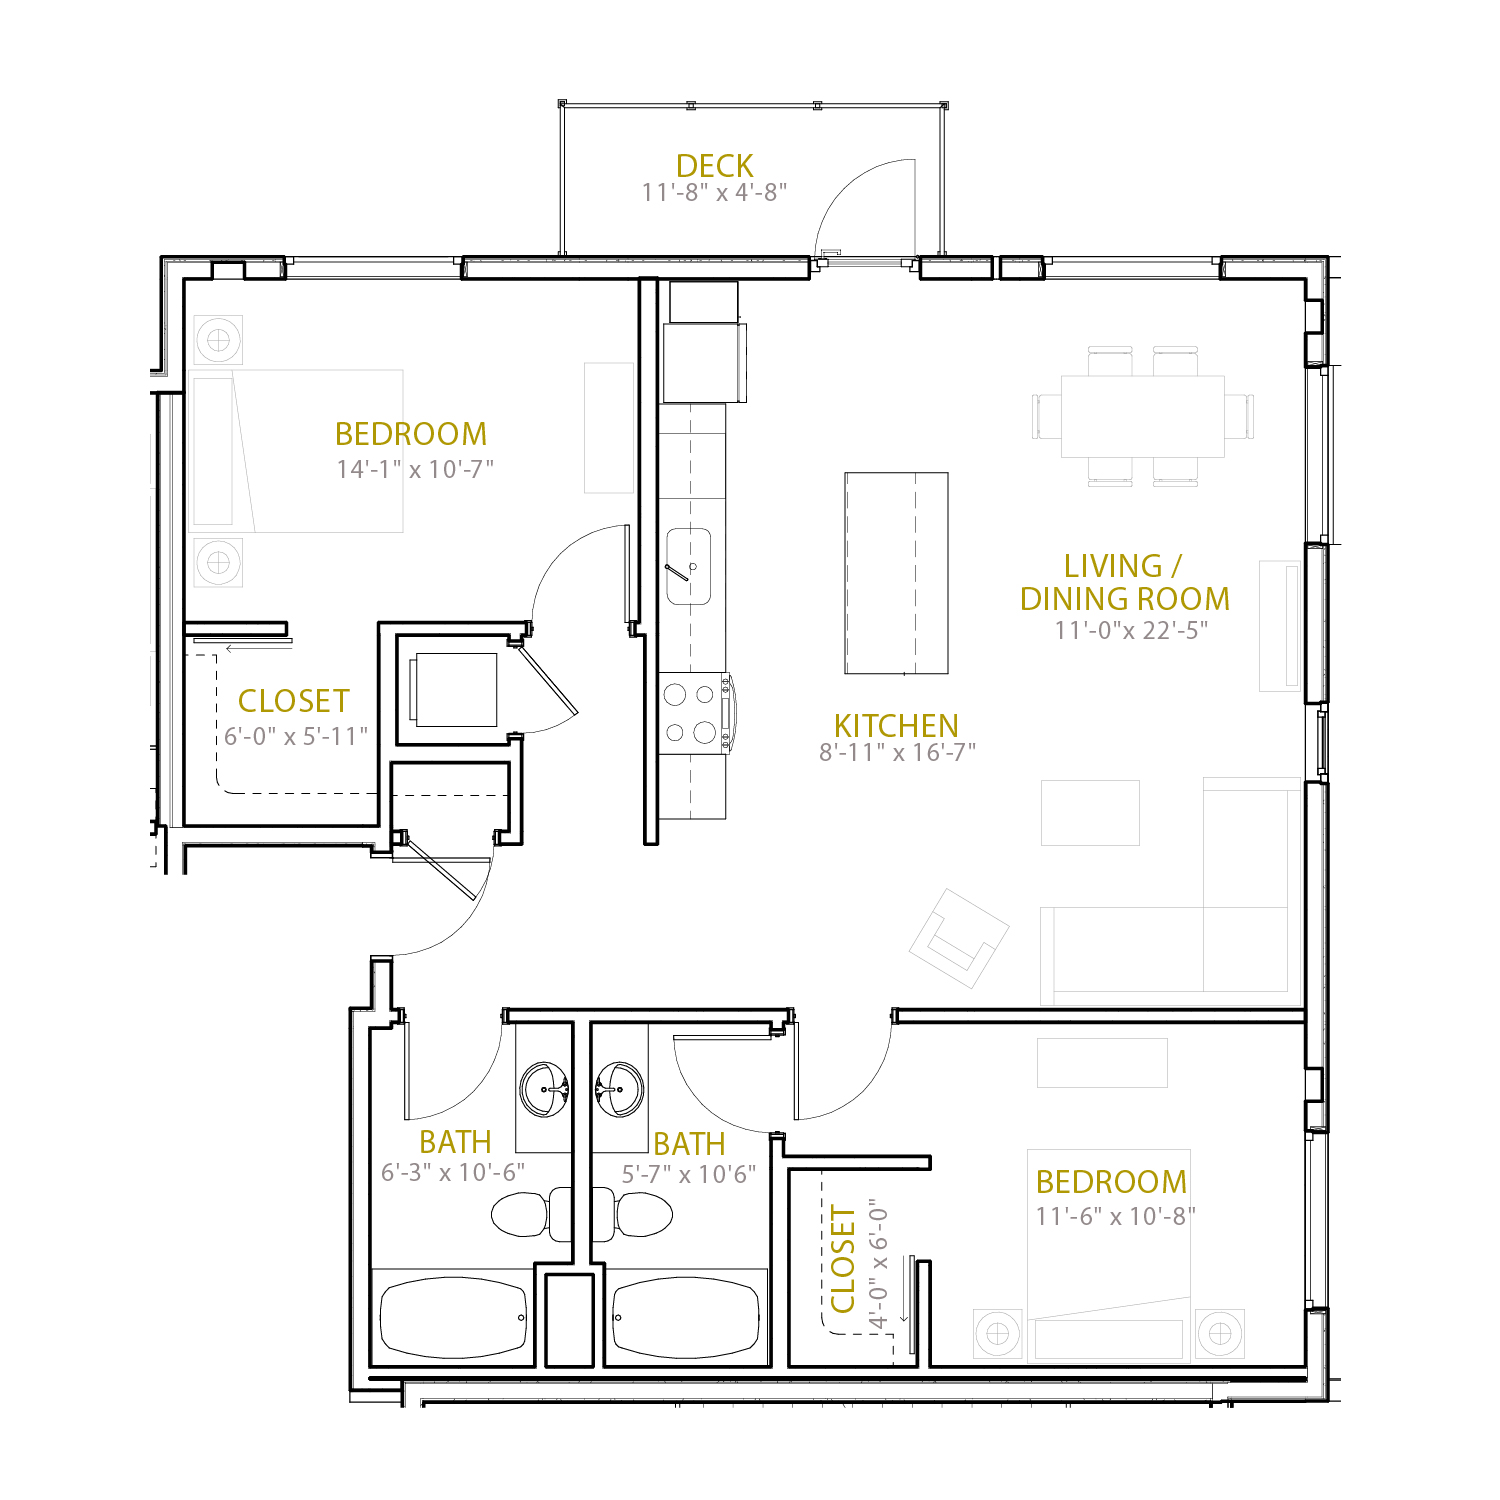 C Eleven floor plan diagram. Two bedrooms, two bathrooms, an open kitchen and living area, and a deck.